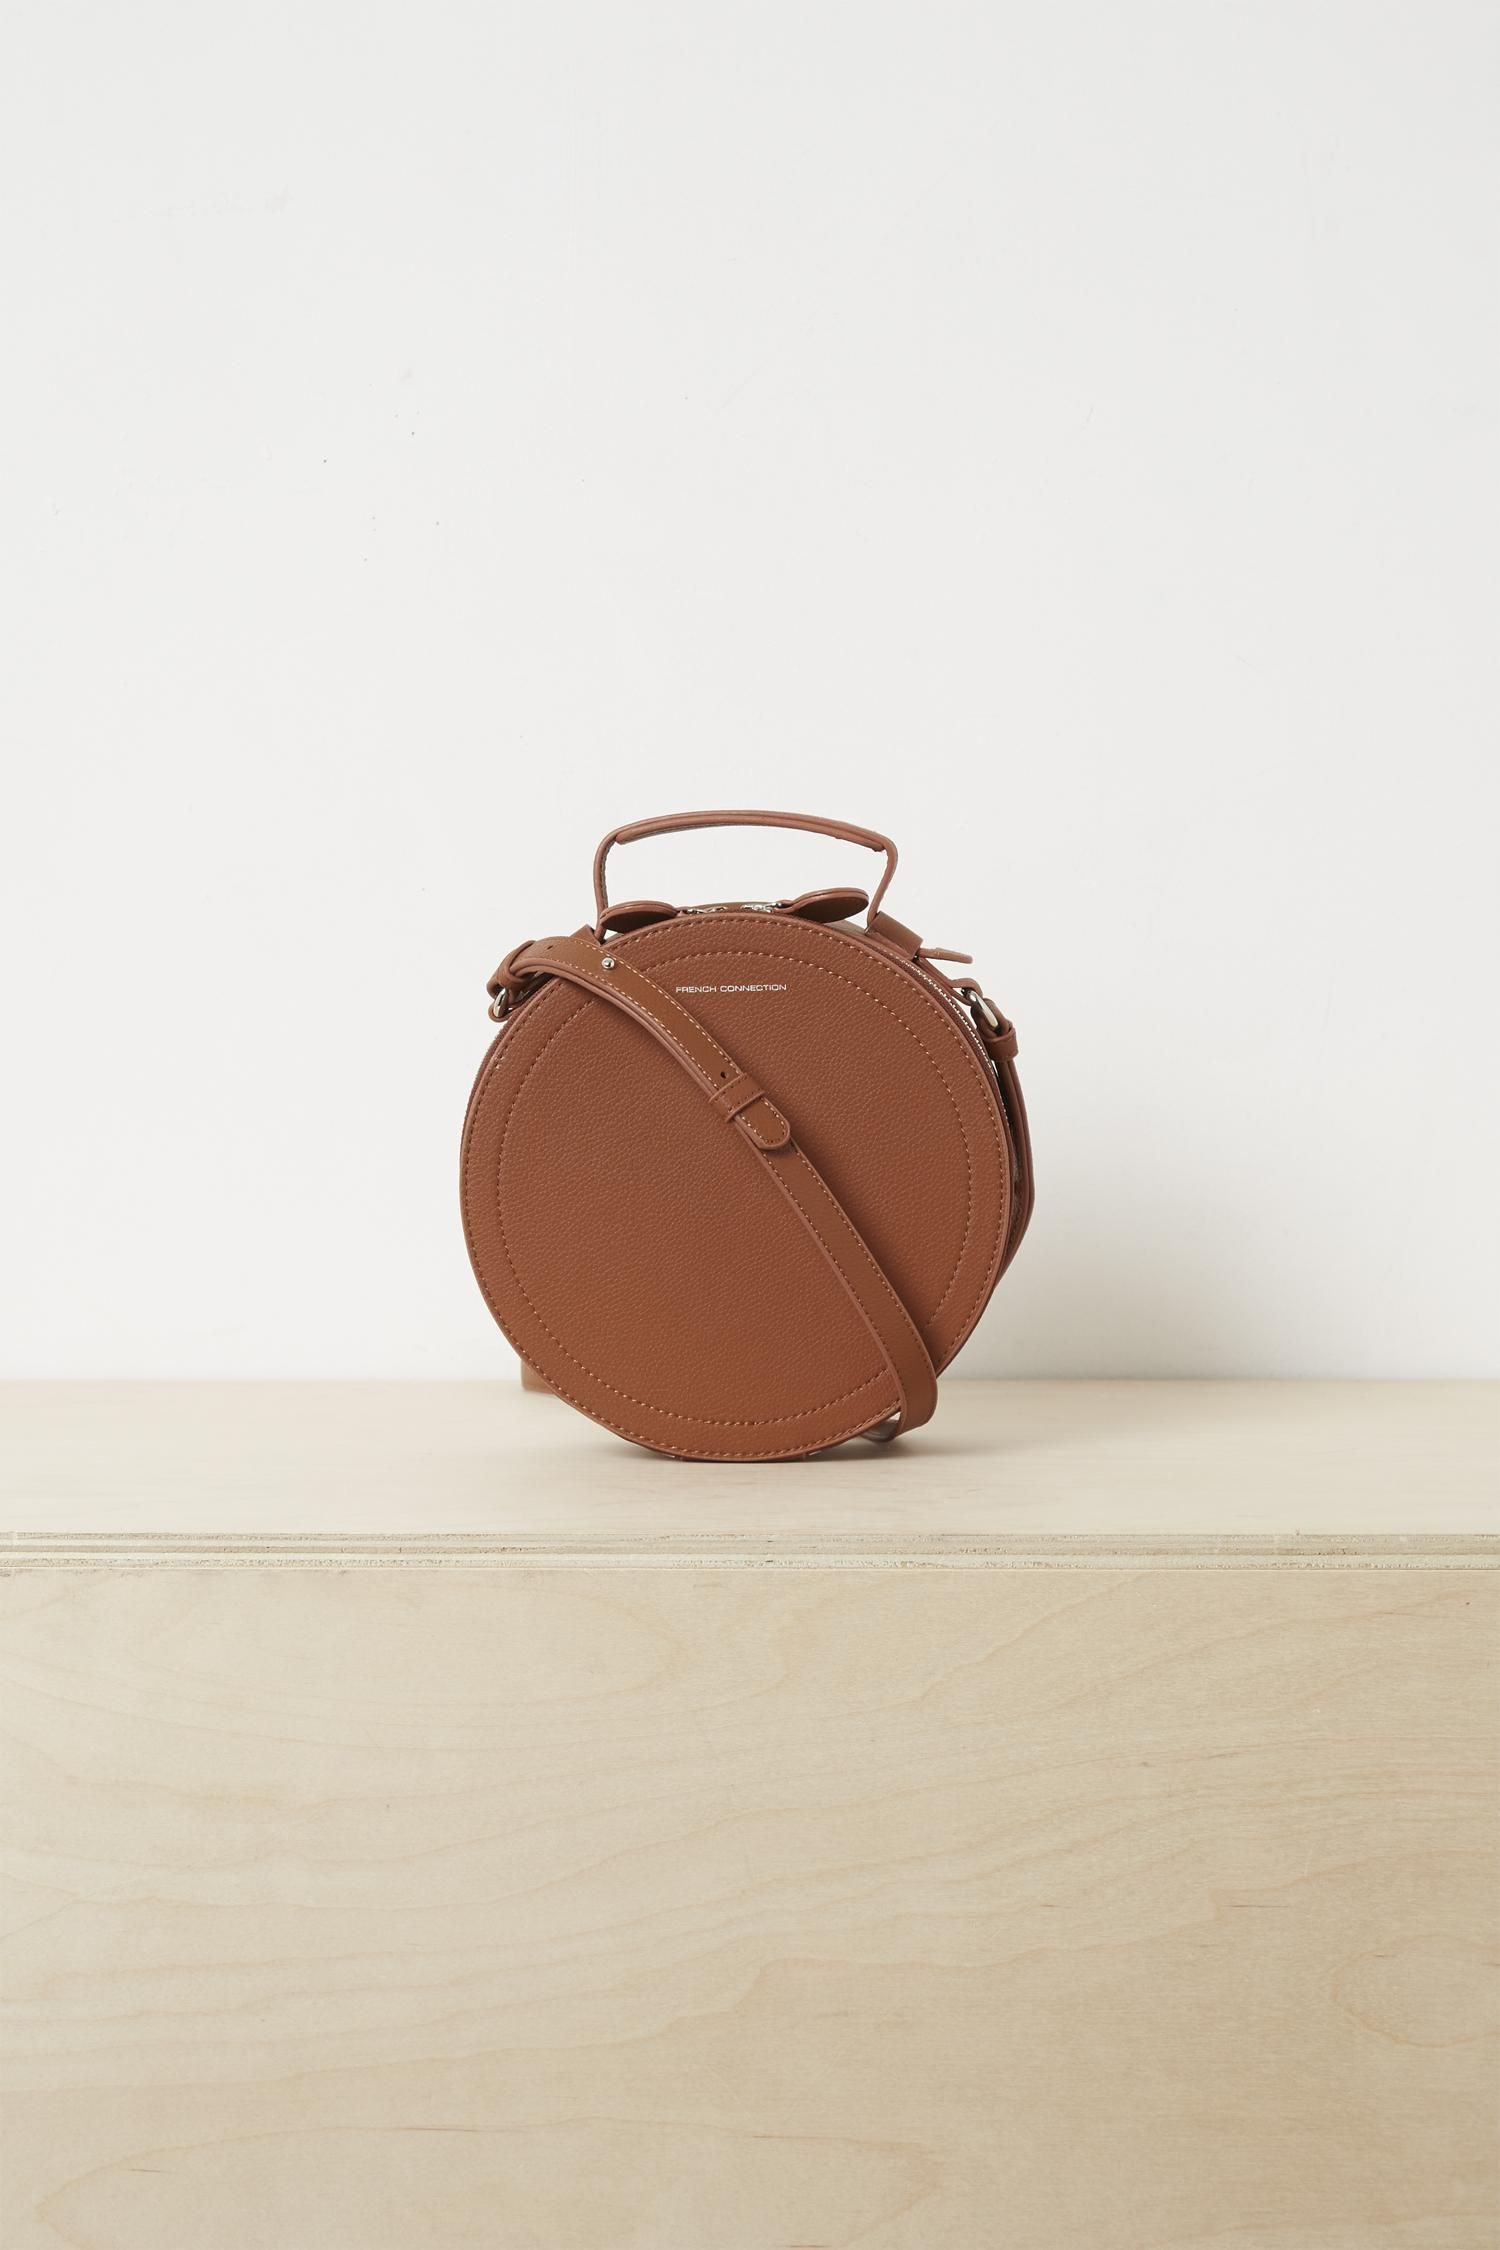 970b38f7e Trace Recycled Leather Crossbody Bag - Brown - French Connection Shoulder  bags